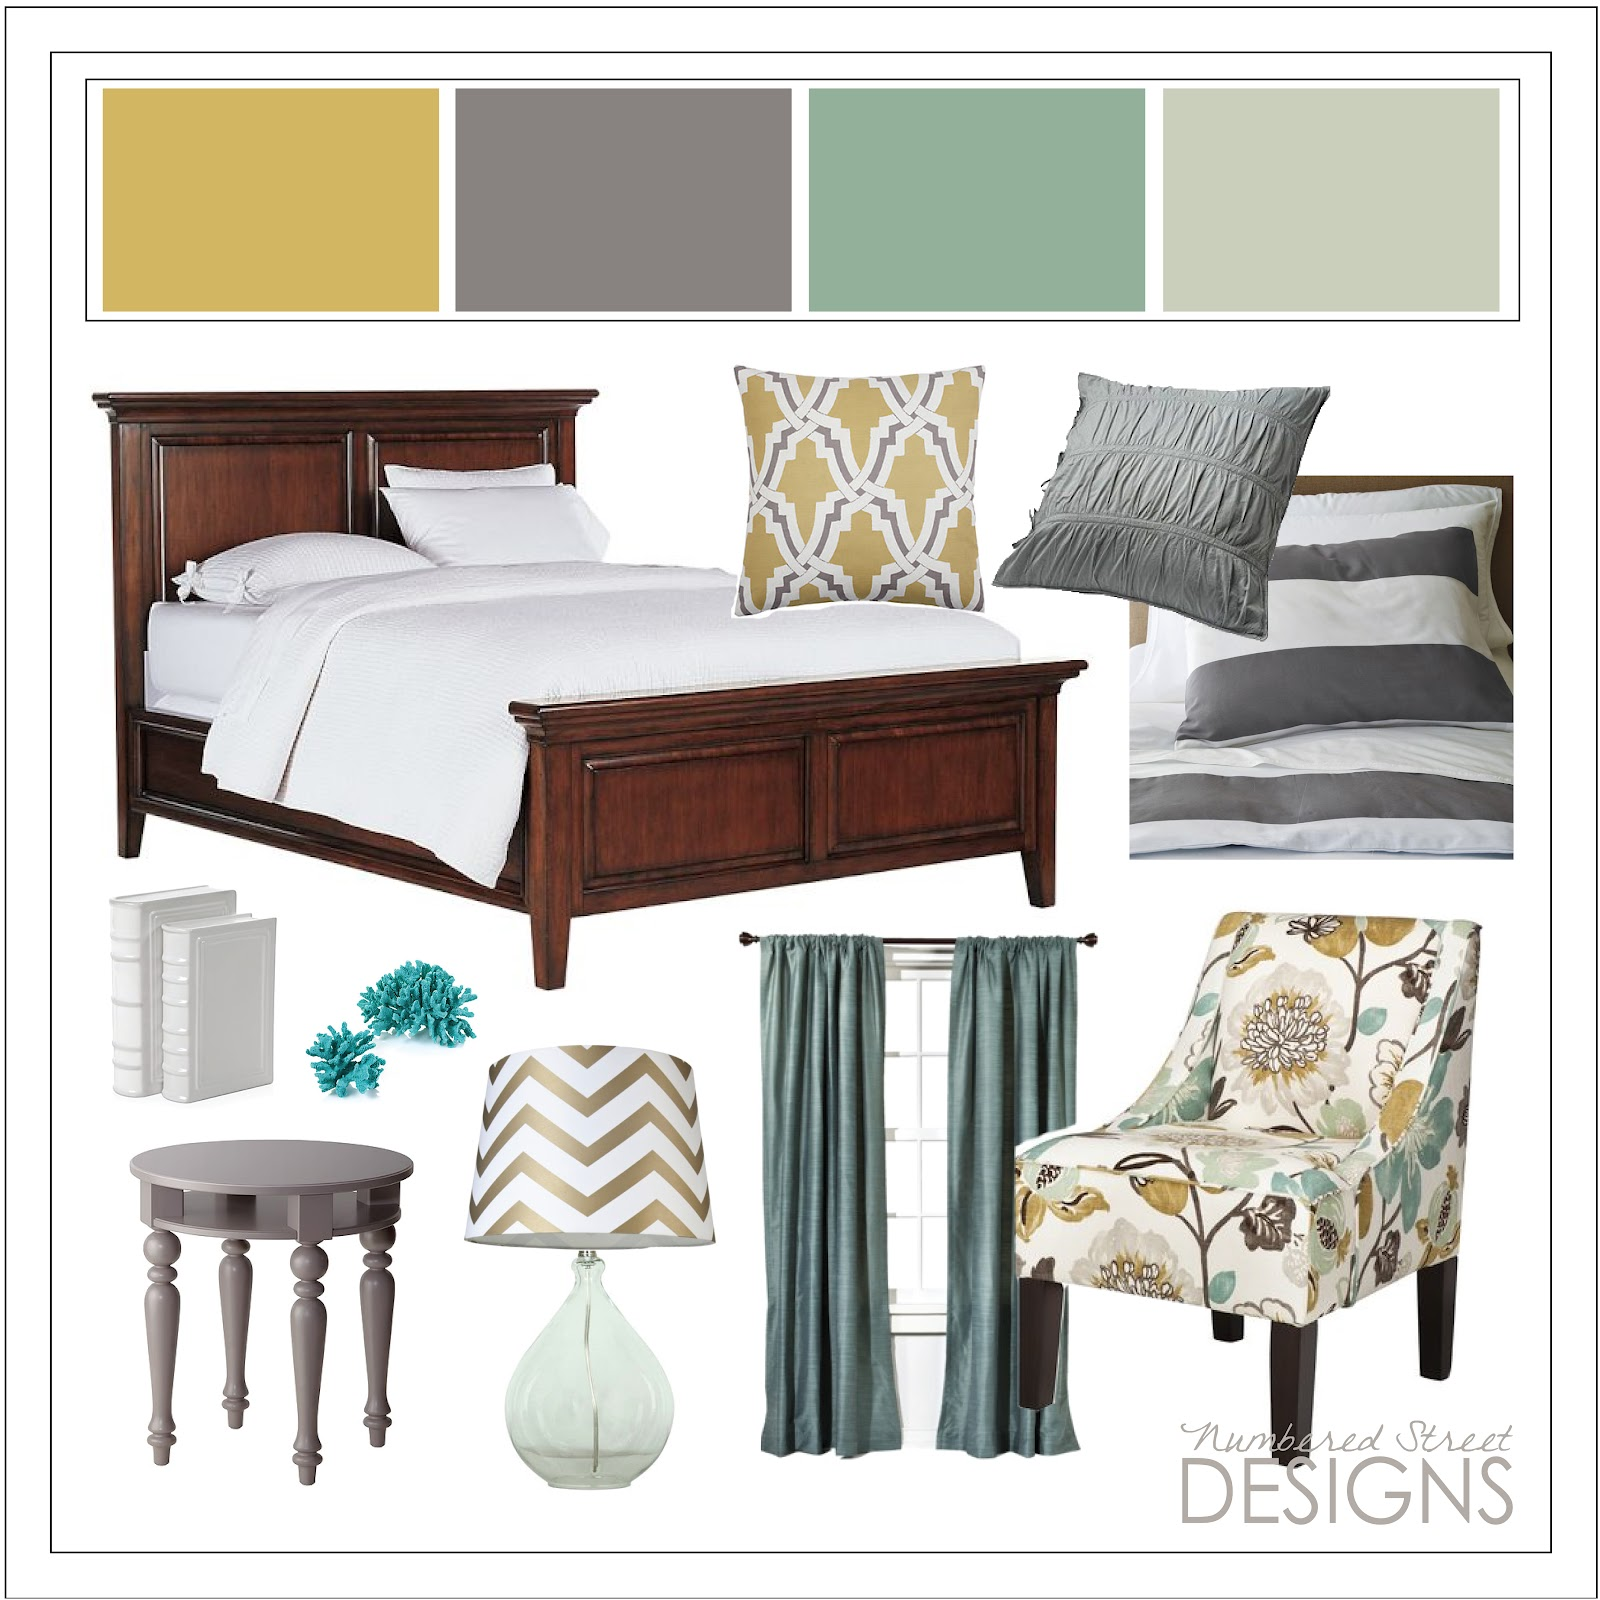 Bedroom Interior Design Board